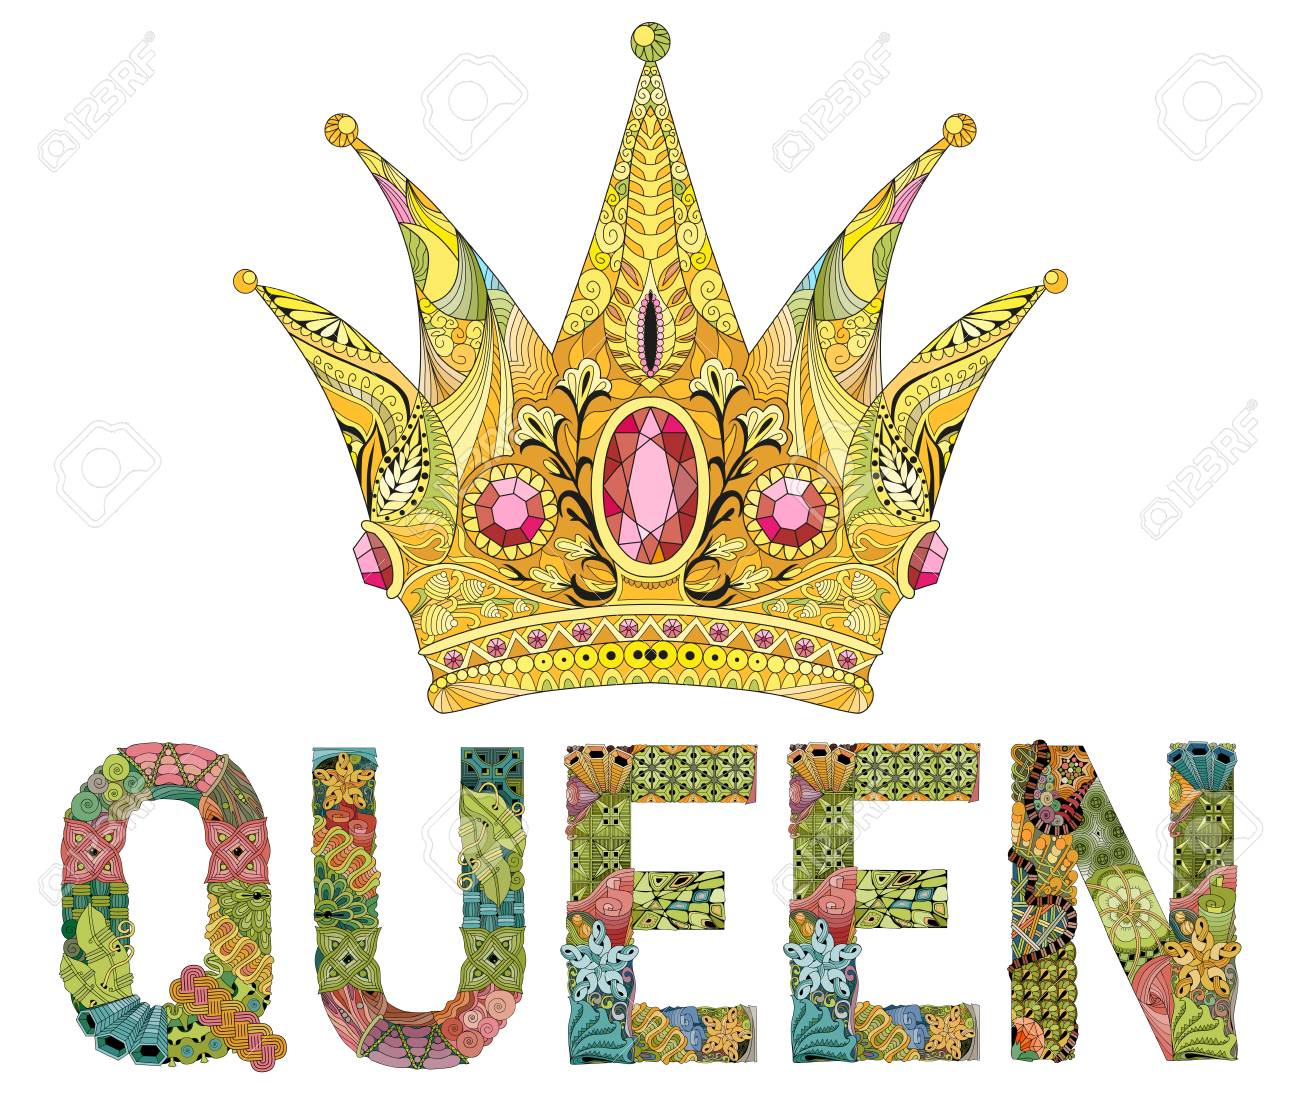 Zentangle stylized crown with word queen. Hand Drawn lace vector illustration - 101892909